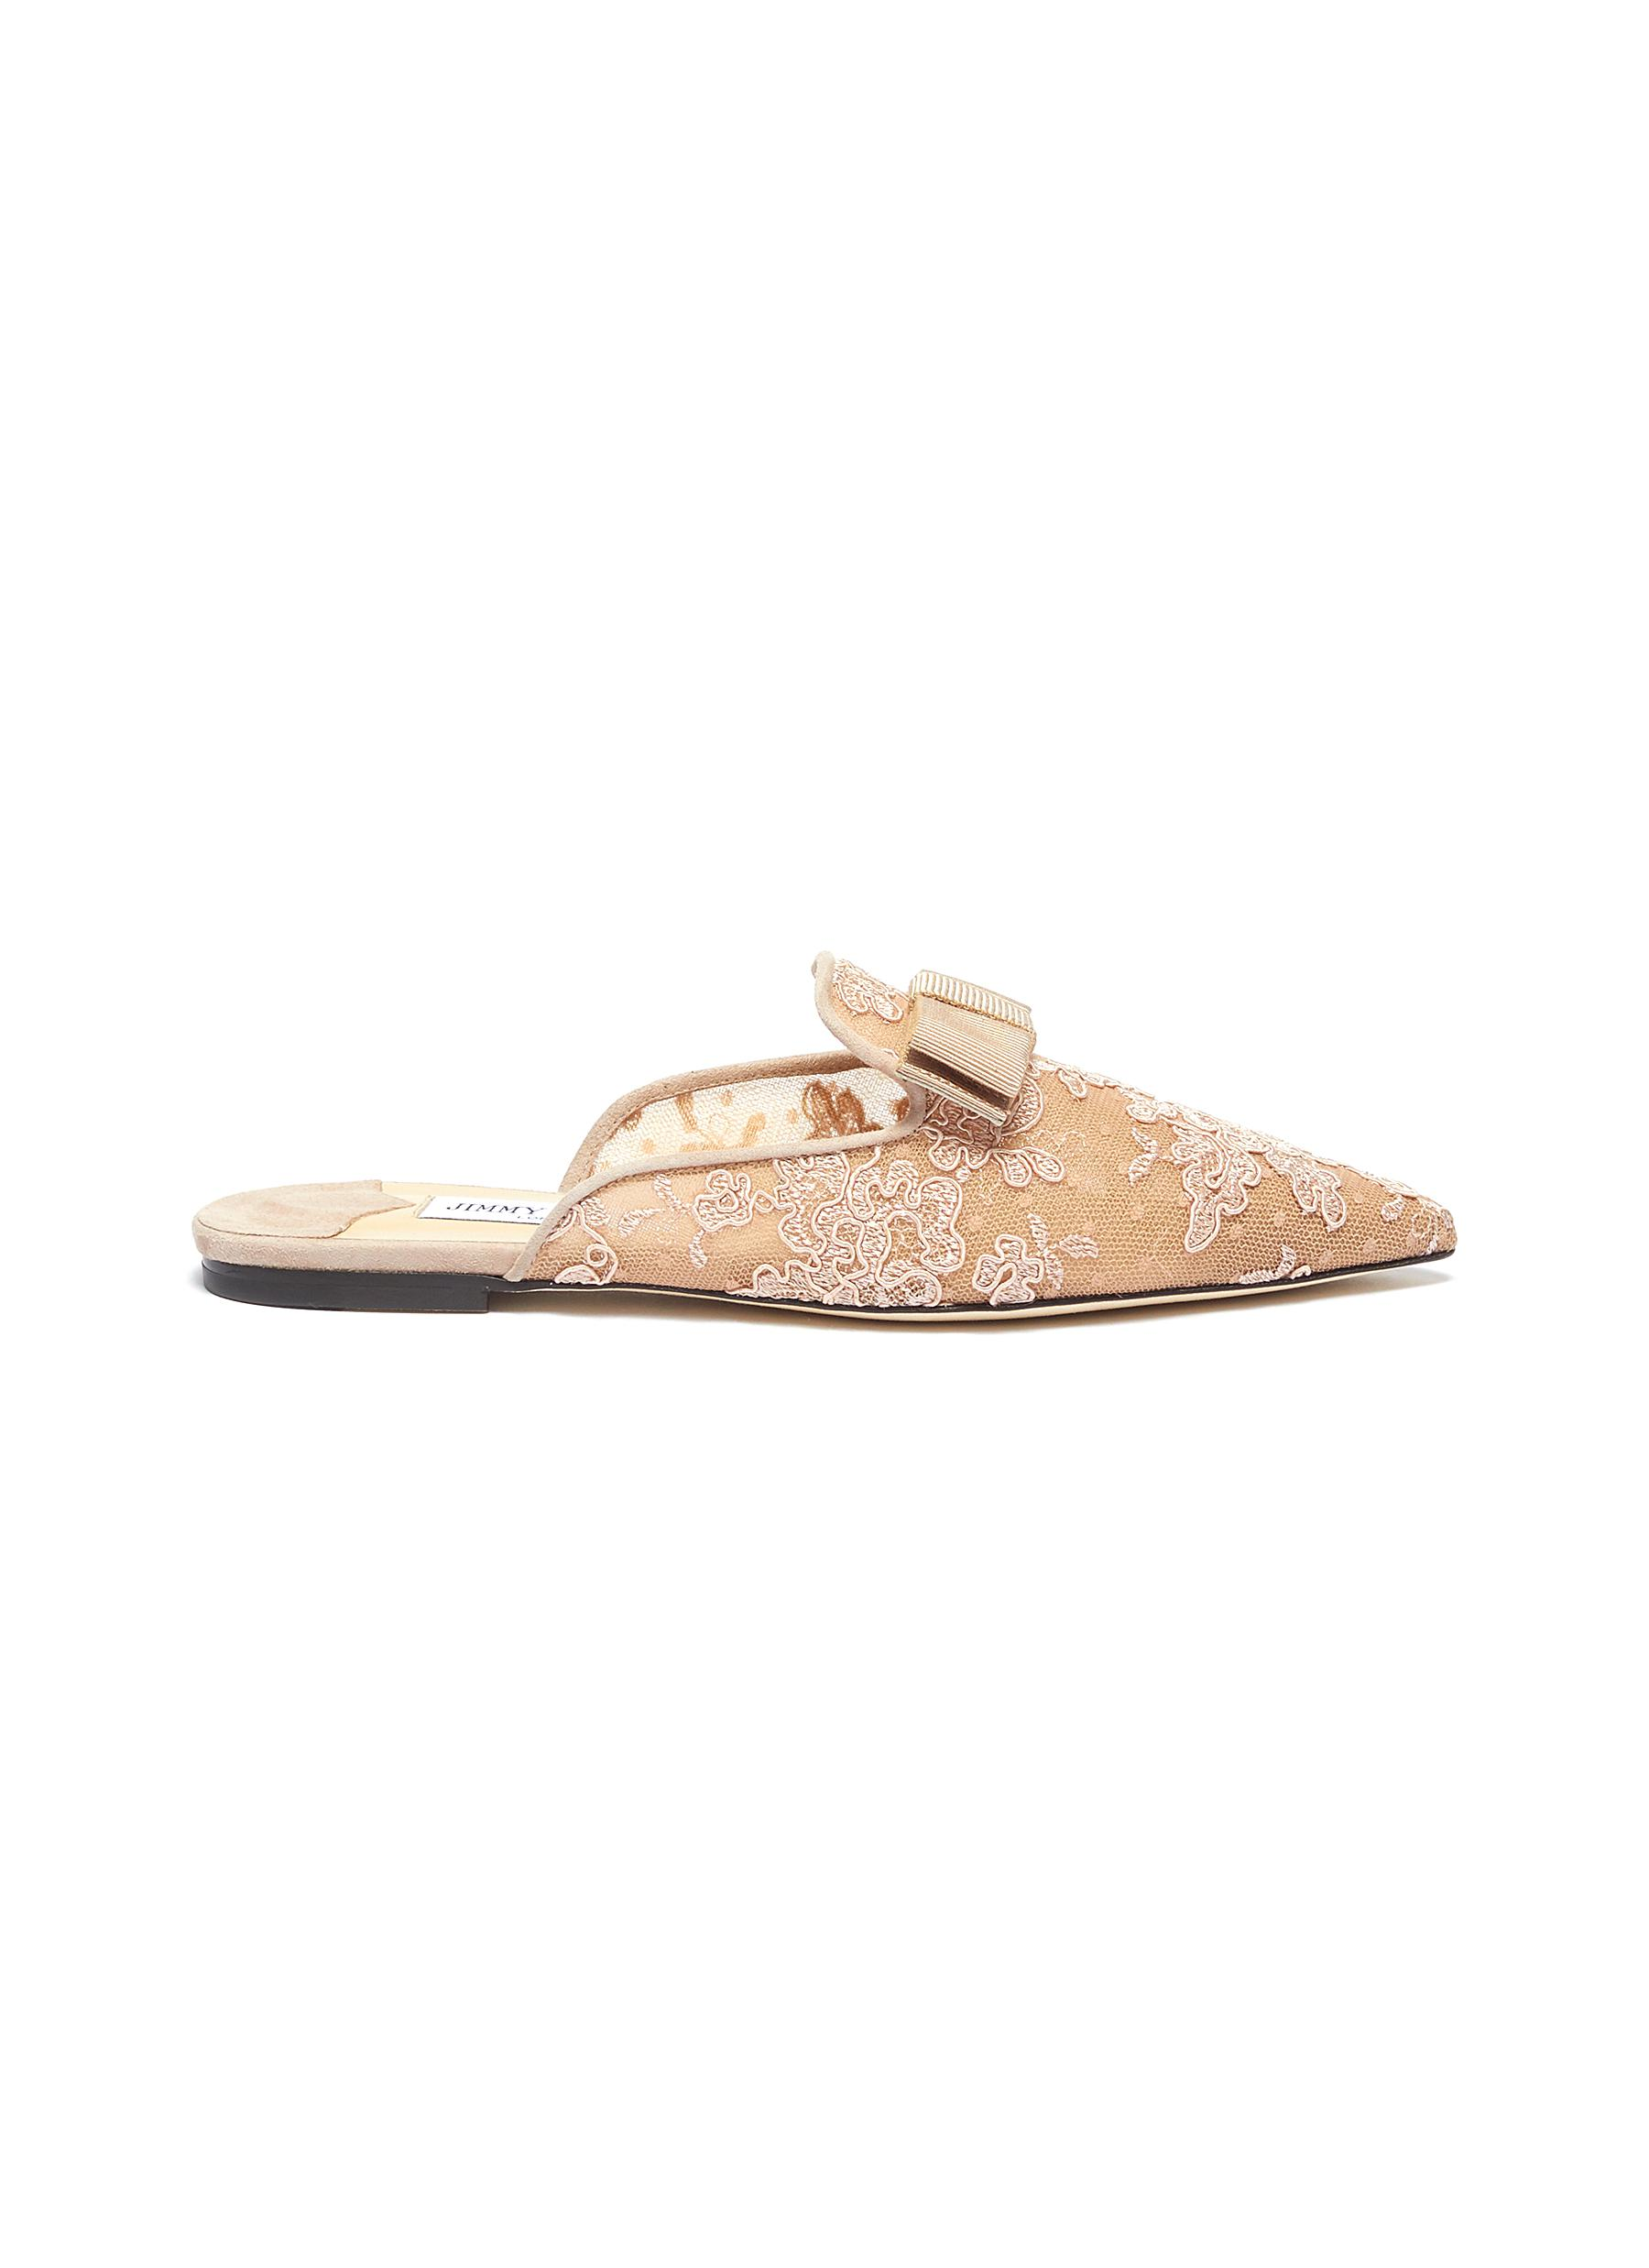 Galaxy bow mesh lace loafer slides by Jimmy Choo